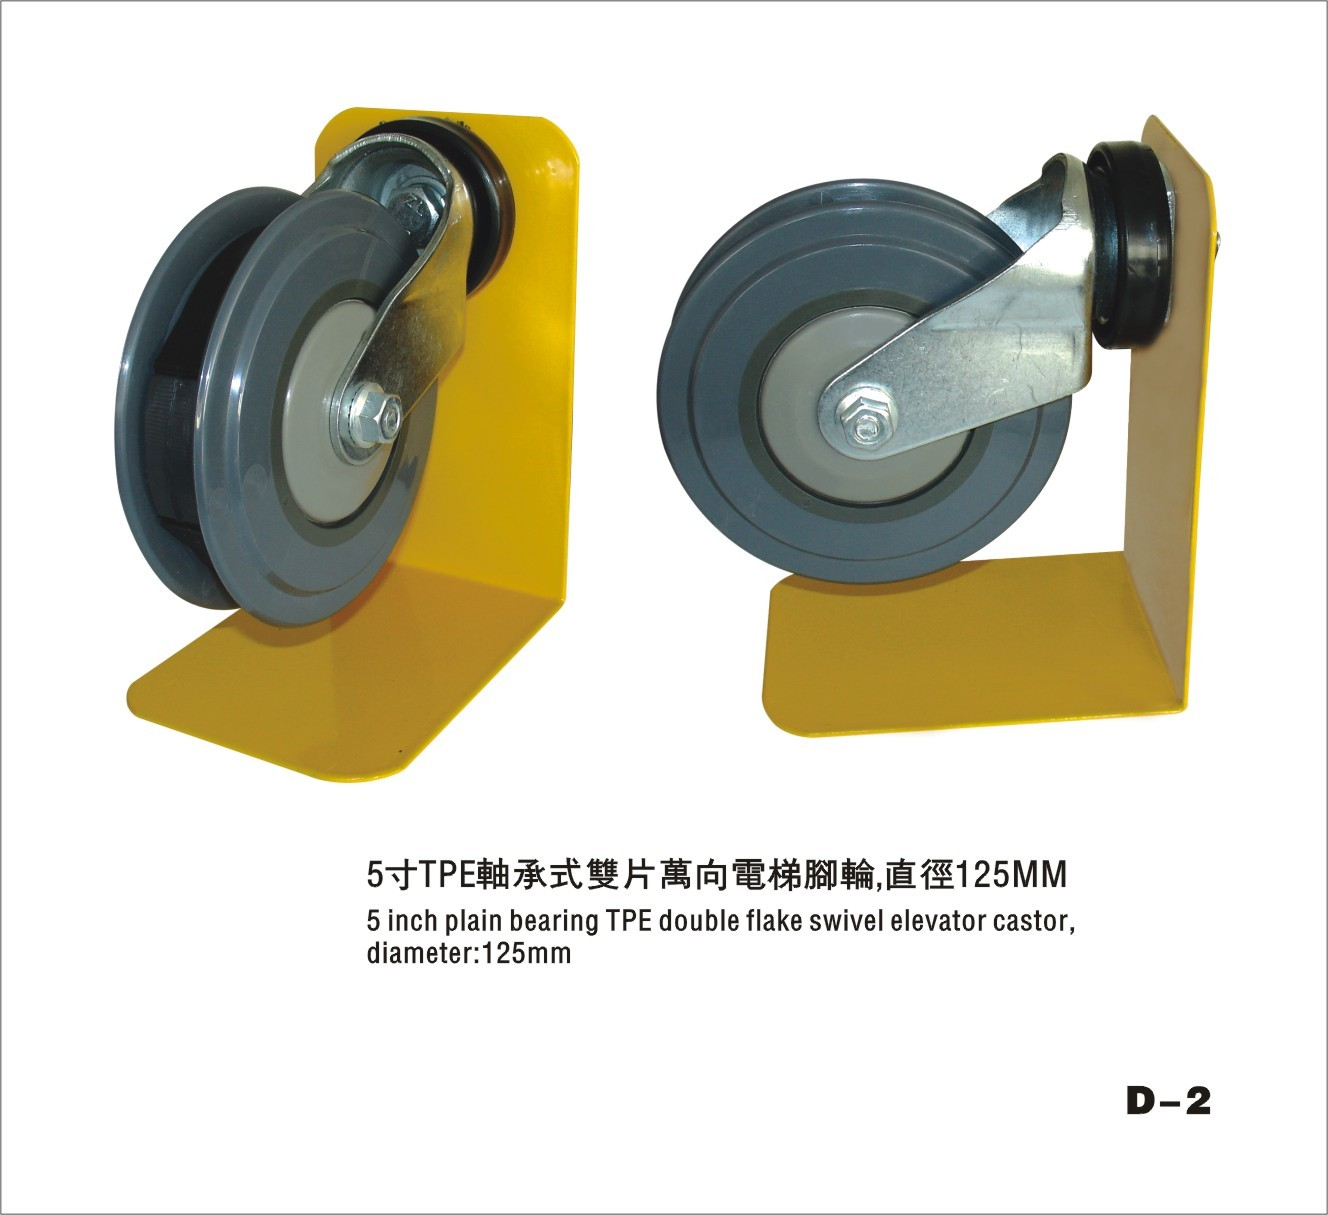 125 mm Plain Bearing TPE Trolley Castor Wheels Heavy Duty With Auto Brake